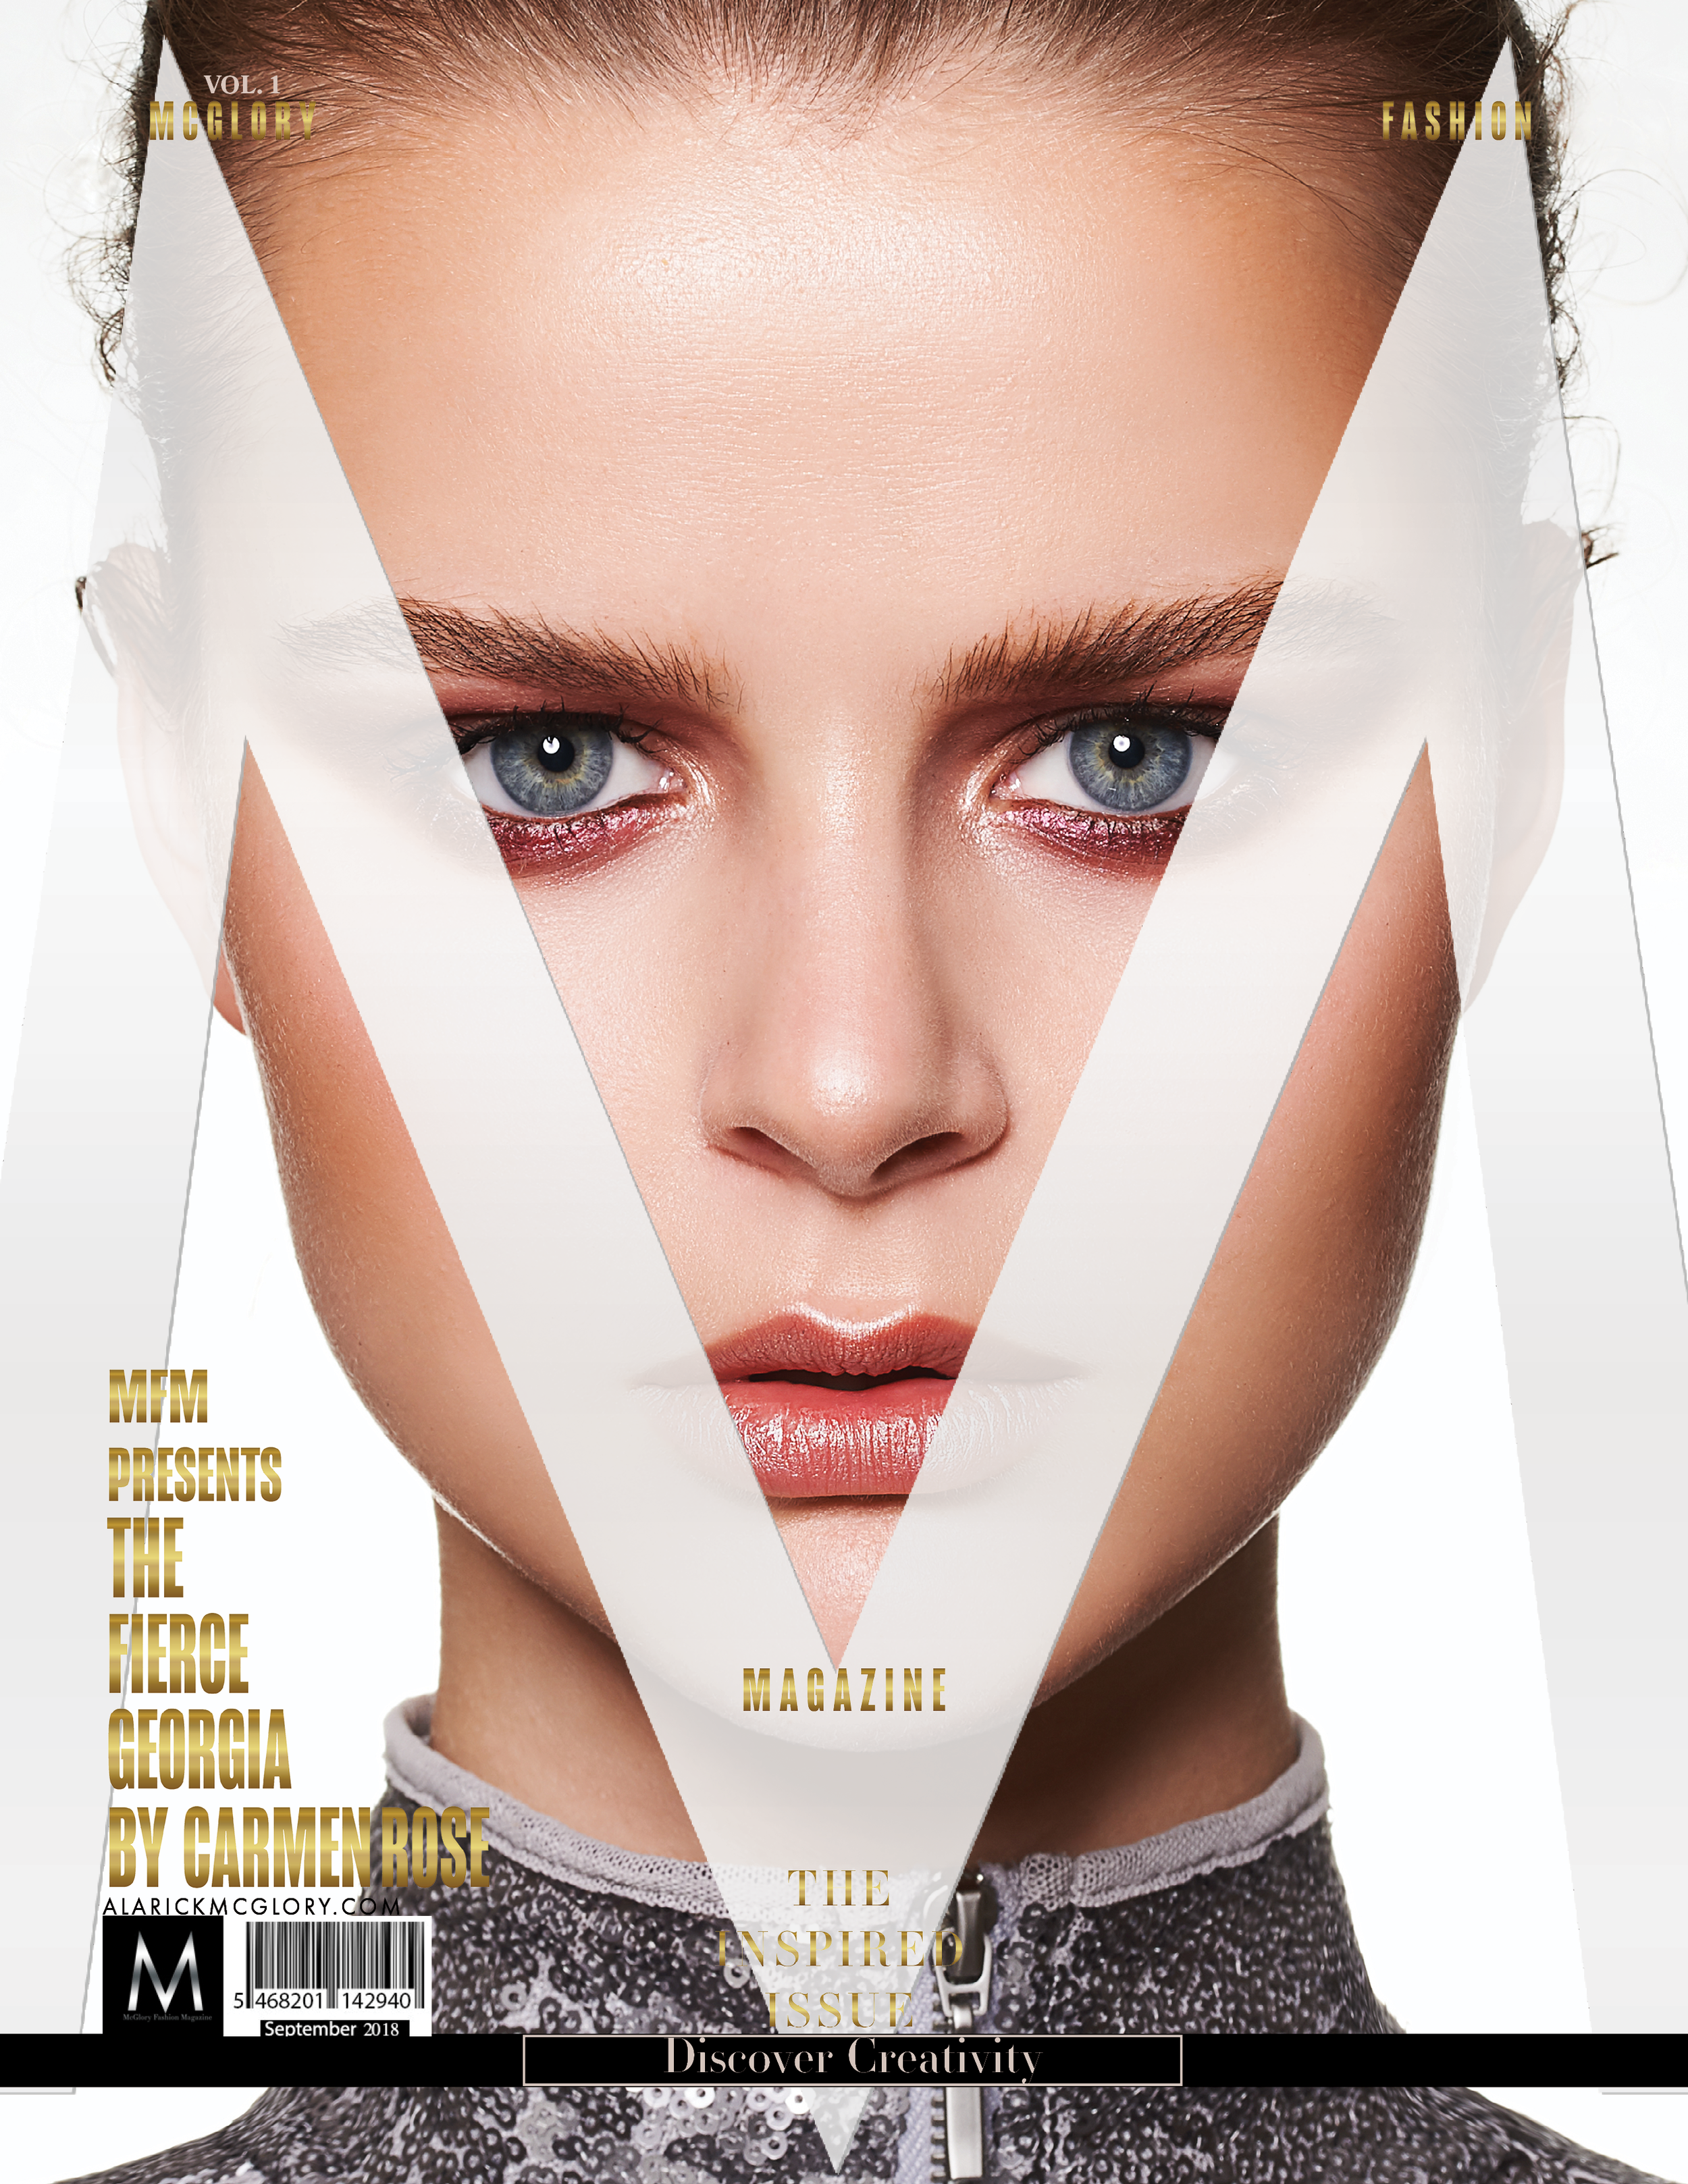 MFM first issue 6-edited 106 Part 1 space 1-1-1-1 PDF VOL 1 NEW NEW print.png